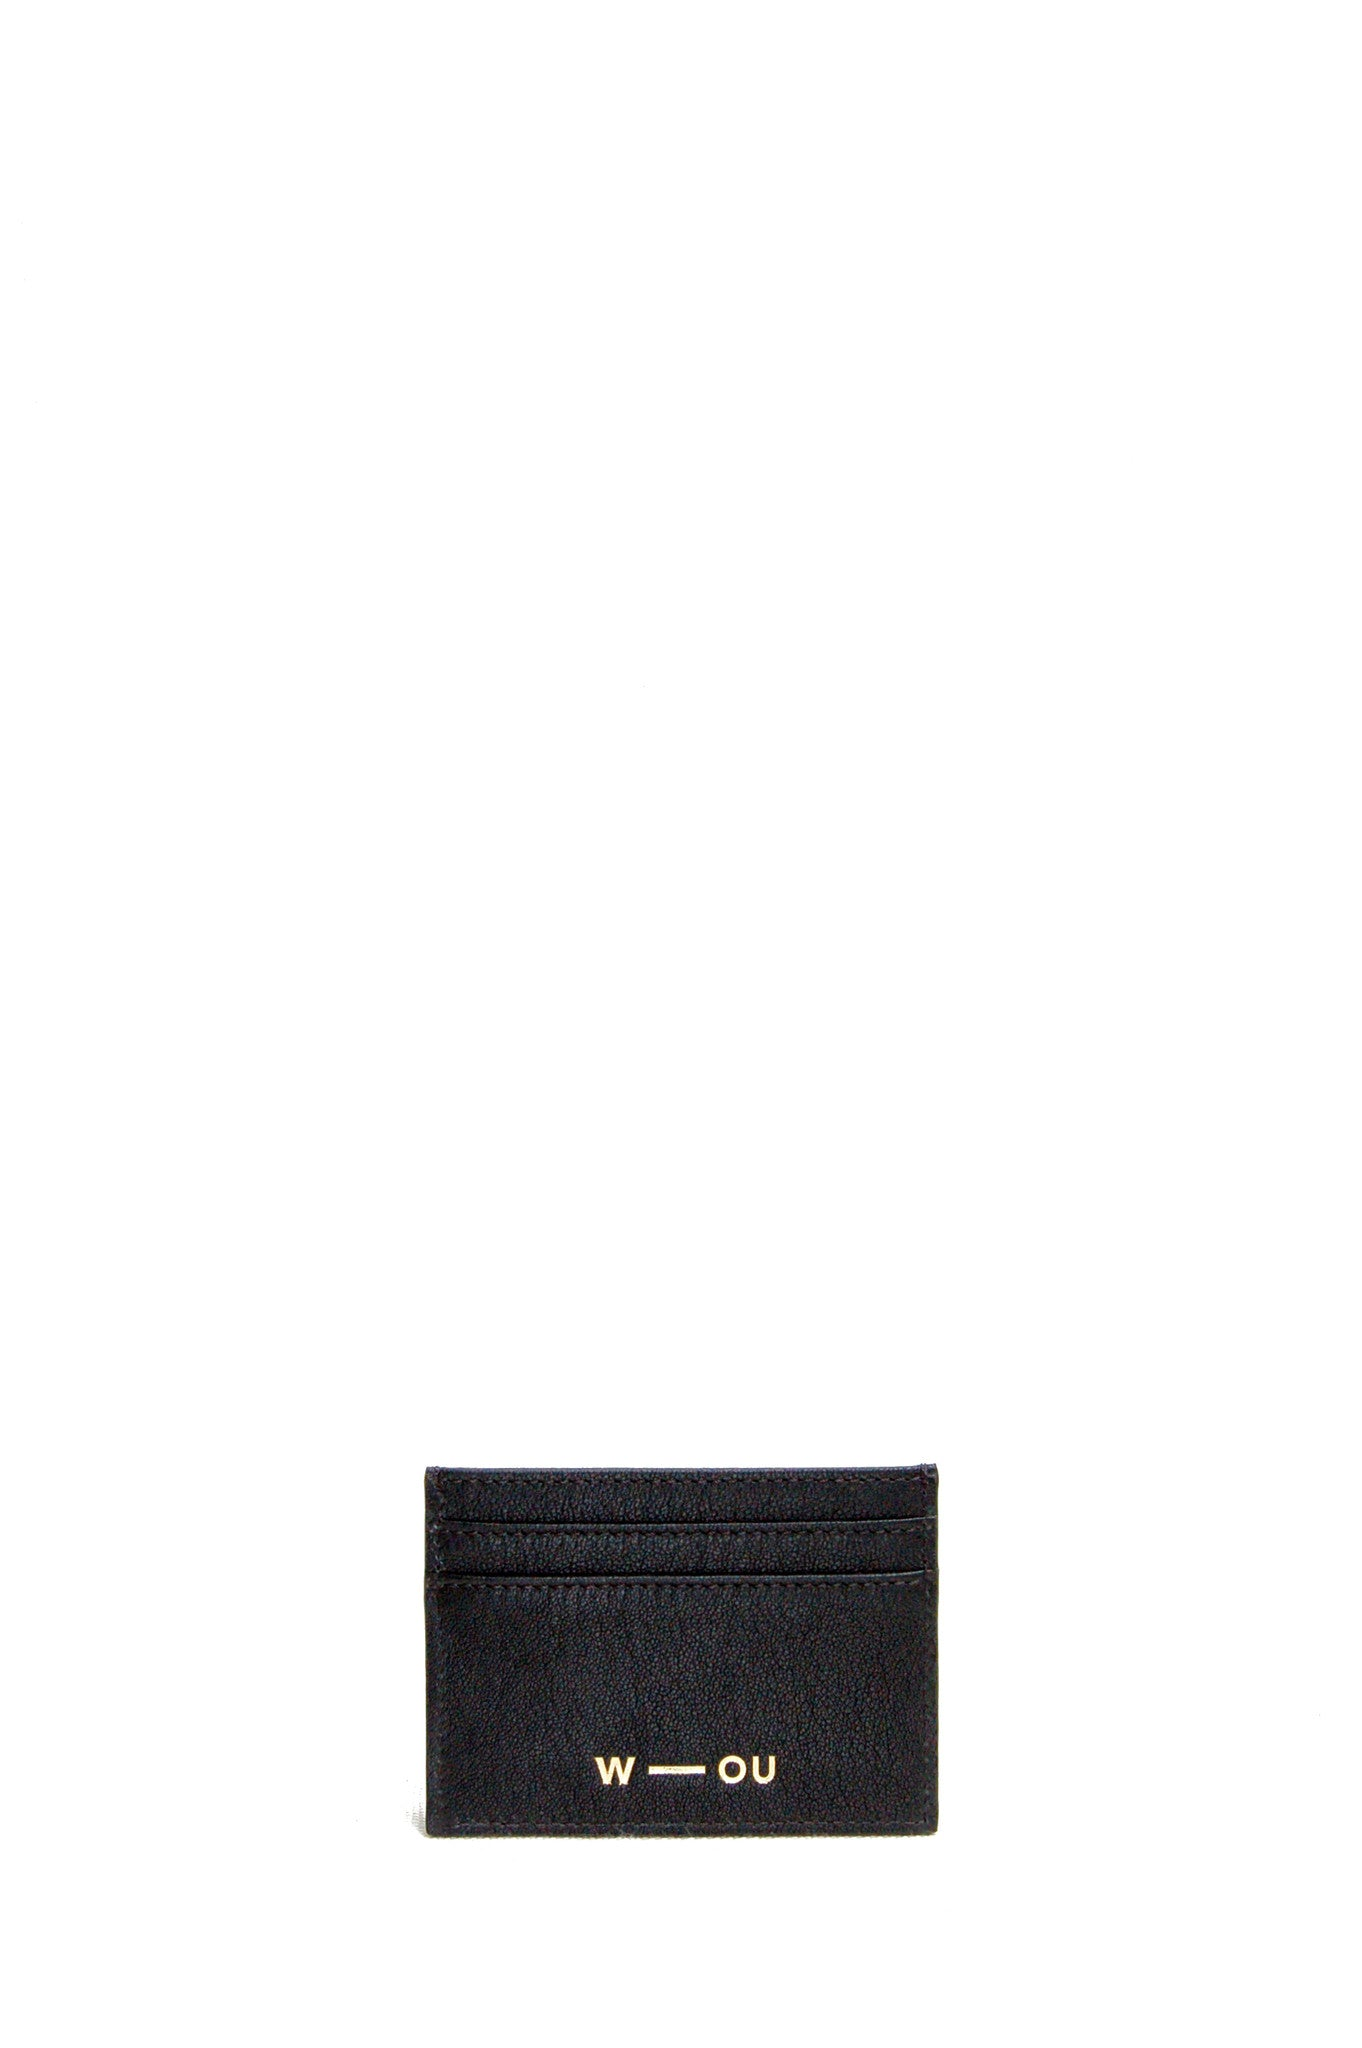 Wendee Ou: Gia cardholder black & grey | Accessories > Wallets,Accessories -  Hiphunters Shop